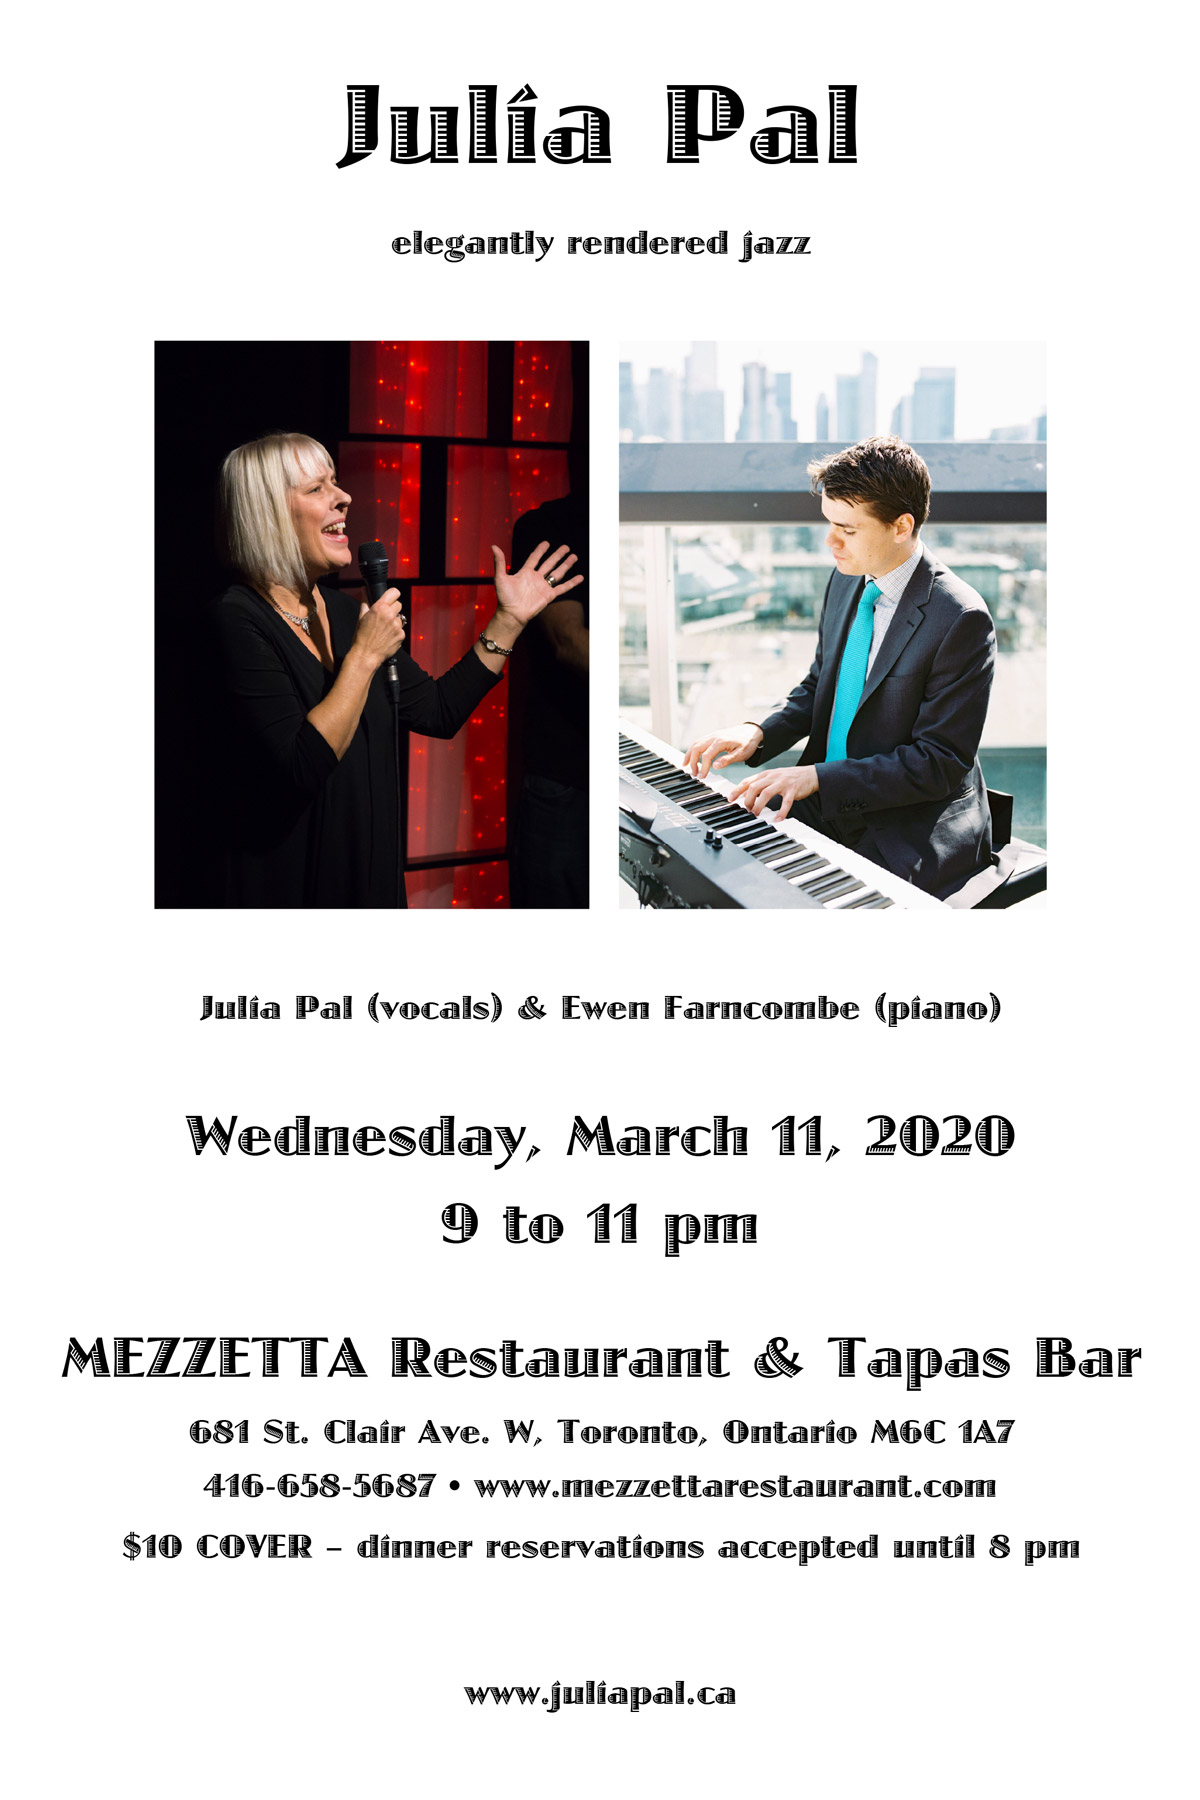 March 11, 2020 - Julia Pal @ Mezzetta